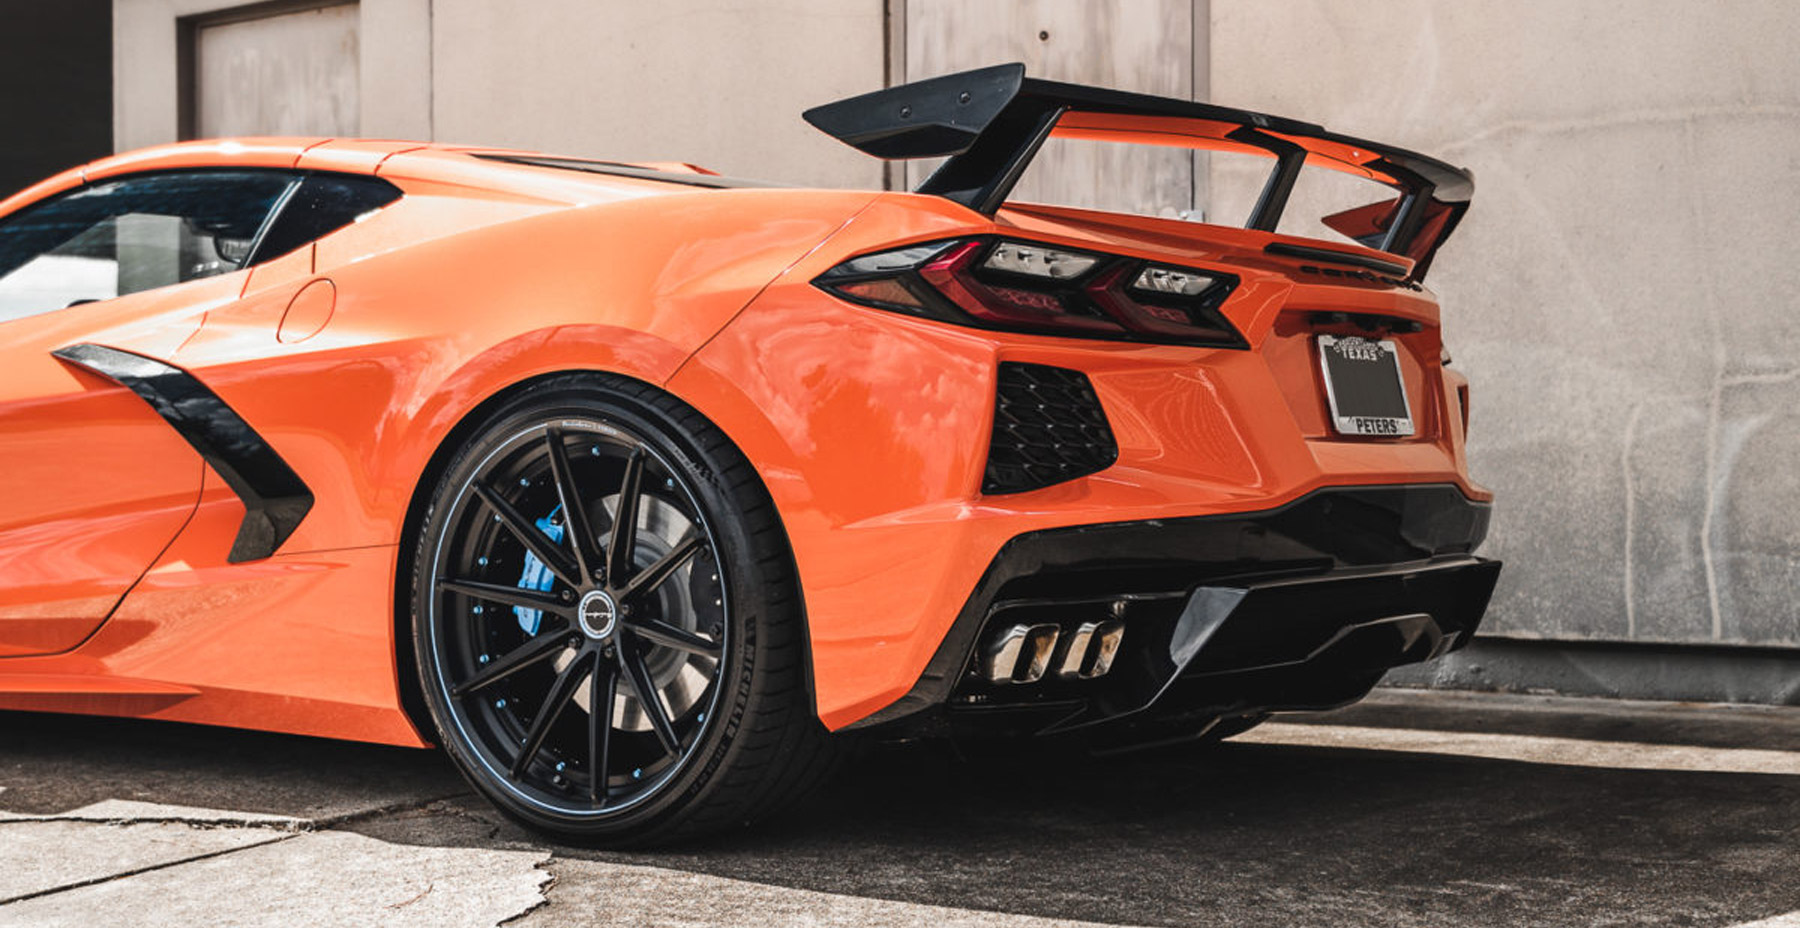 Orange Corvette C8 x Brixton R11-R Duo Series Forged Wheel Finished in Firecracker Black (Satin Clear)